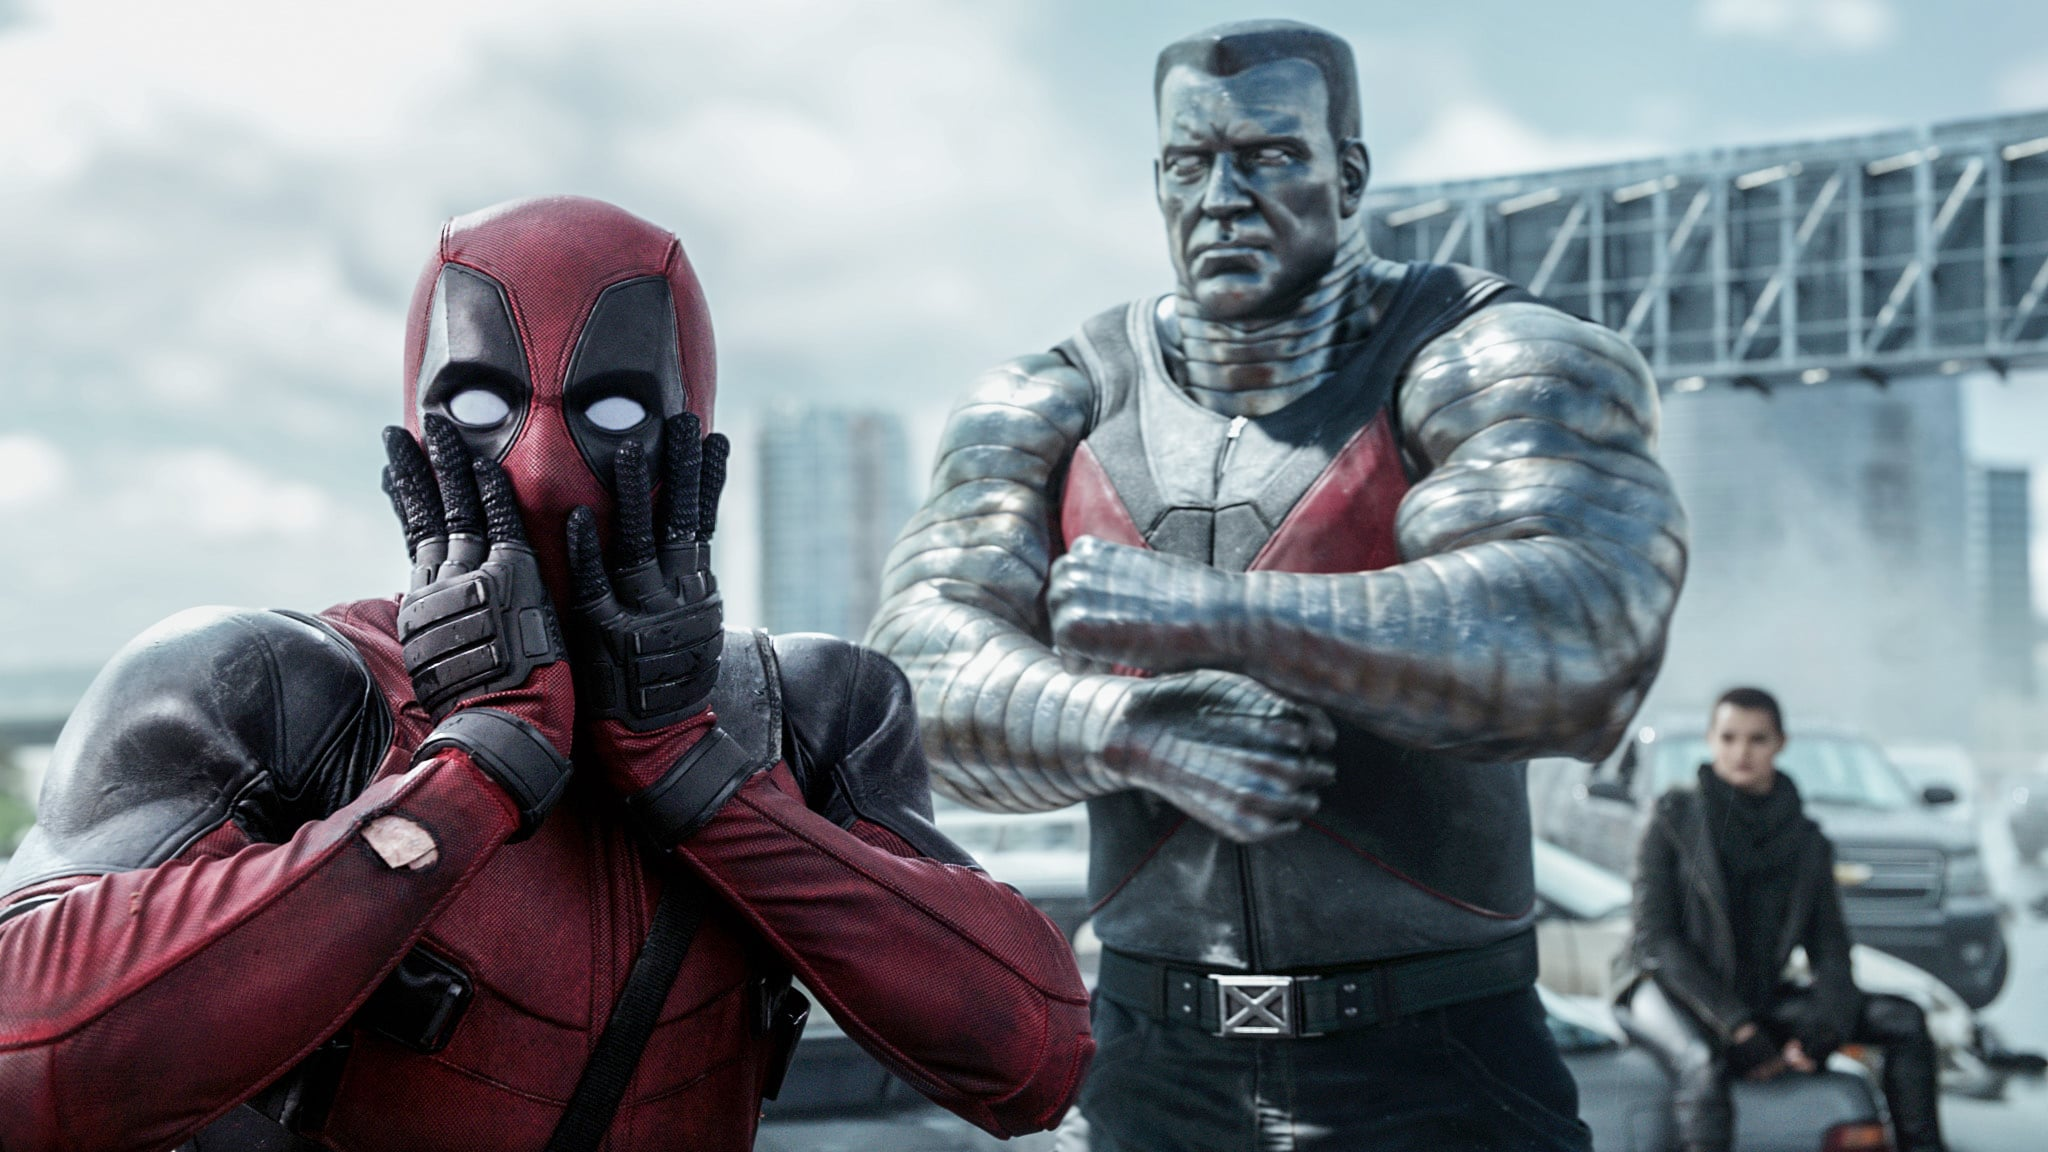 DEADPOOL, from left: Ryan Reynolds, as Deadpool, Colossus (voice: Stefan Kapicic), Brianna Hildebrand, 2016. / TM &  Twentieth Century Fox Film Corporation. All rights reserved. /Courtesy Everett Collection